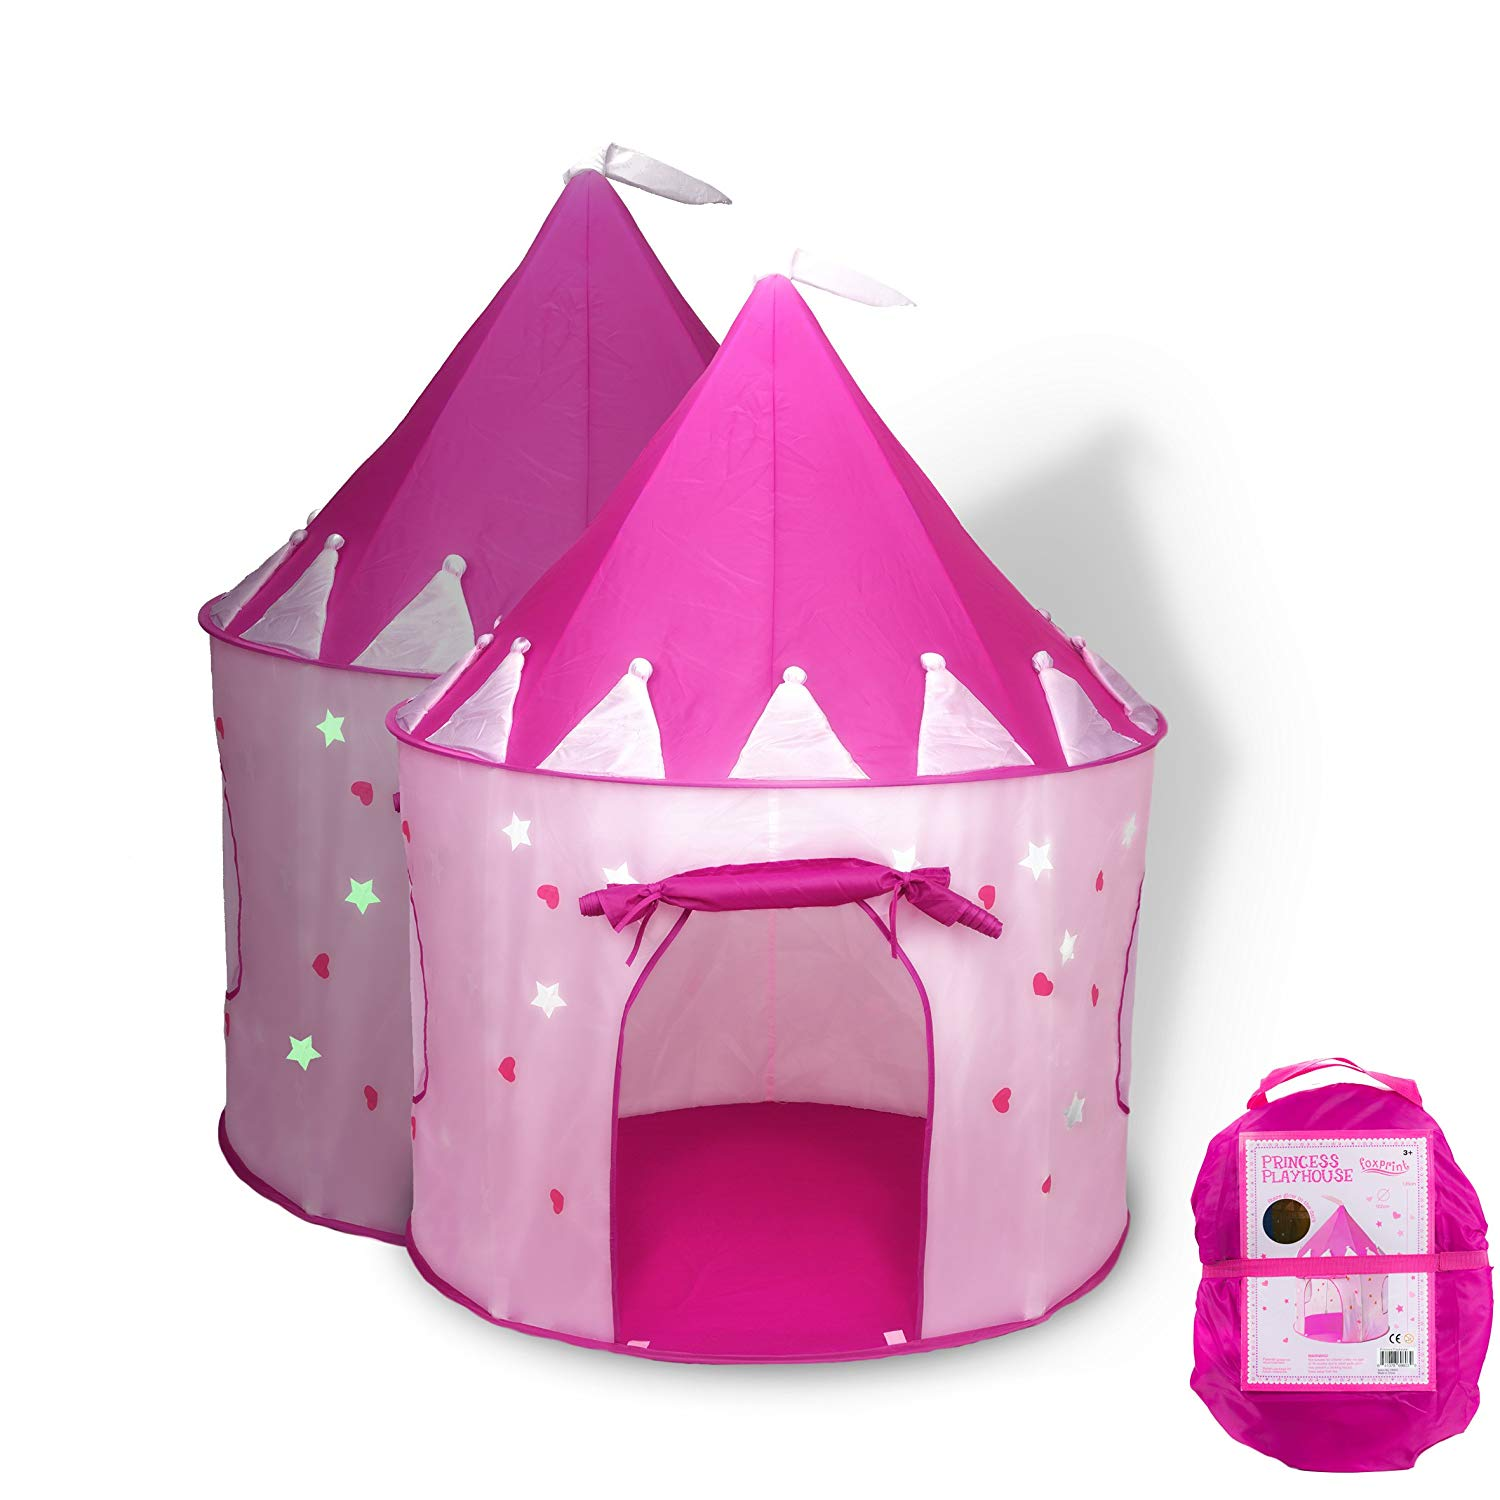 FoxPrint Princess Castle Glow in the Dark Foldable Pop Up Play Tent by FoxPrint